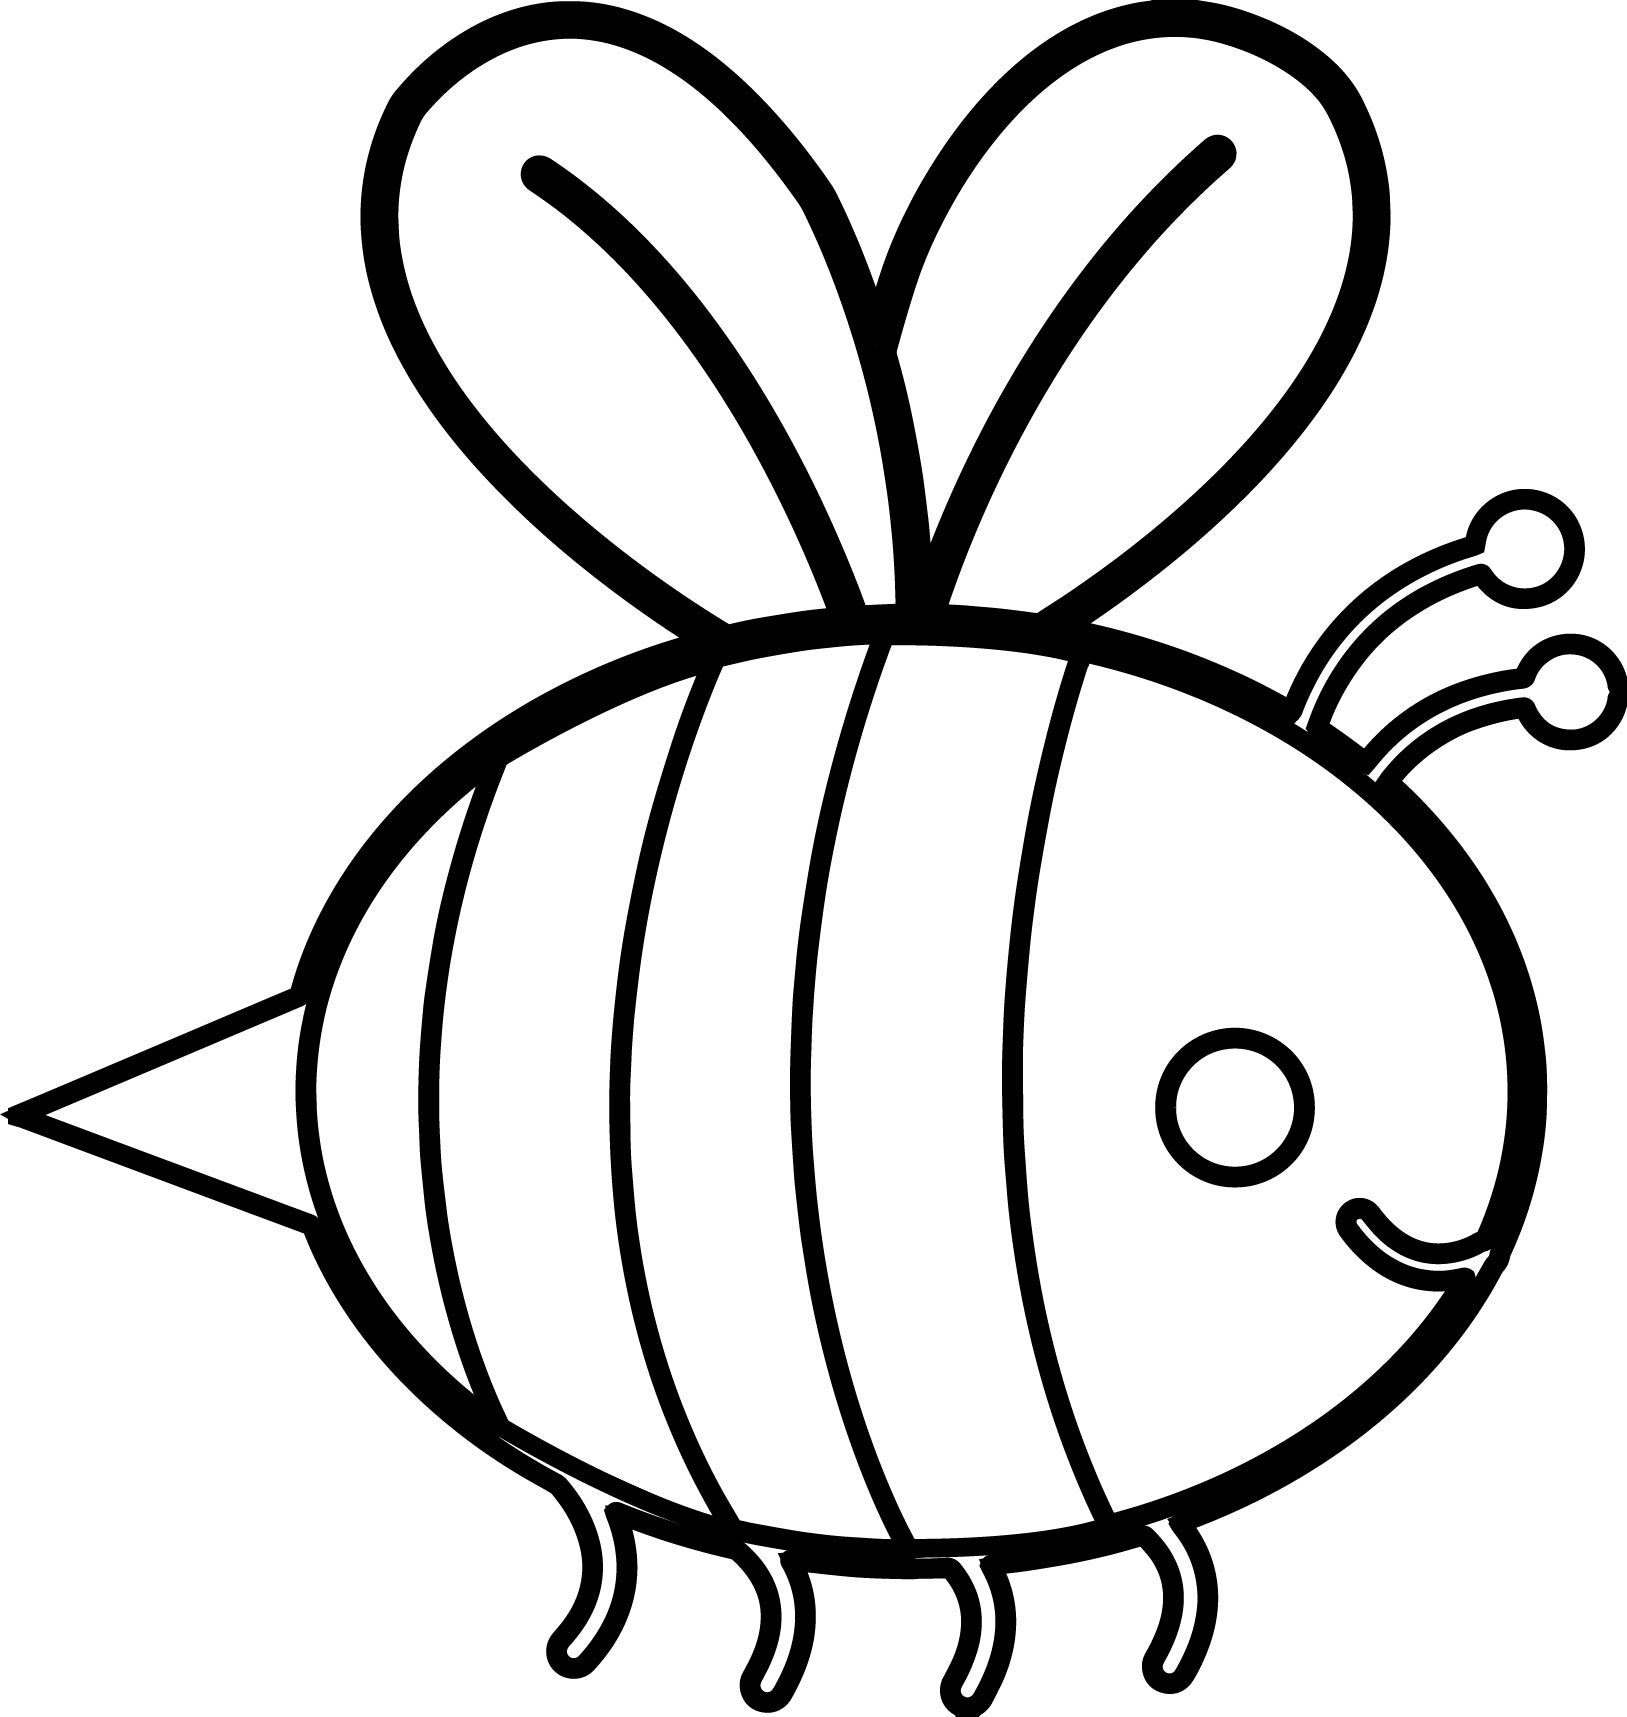 staying bee coloring page - Bee Coloring Page